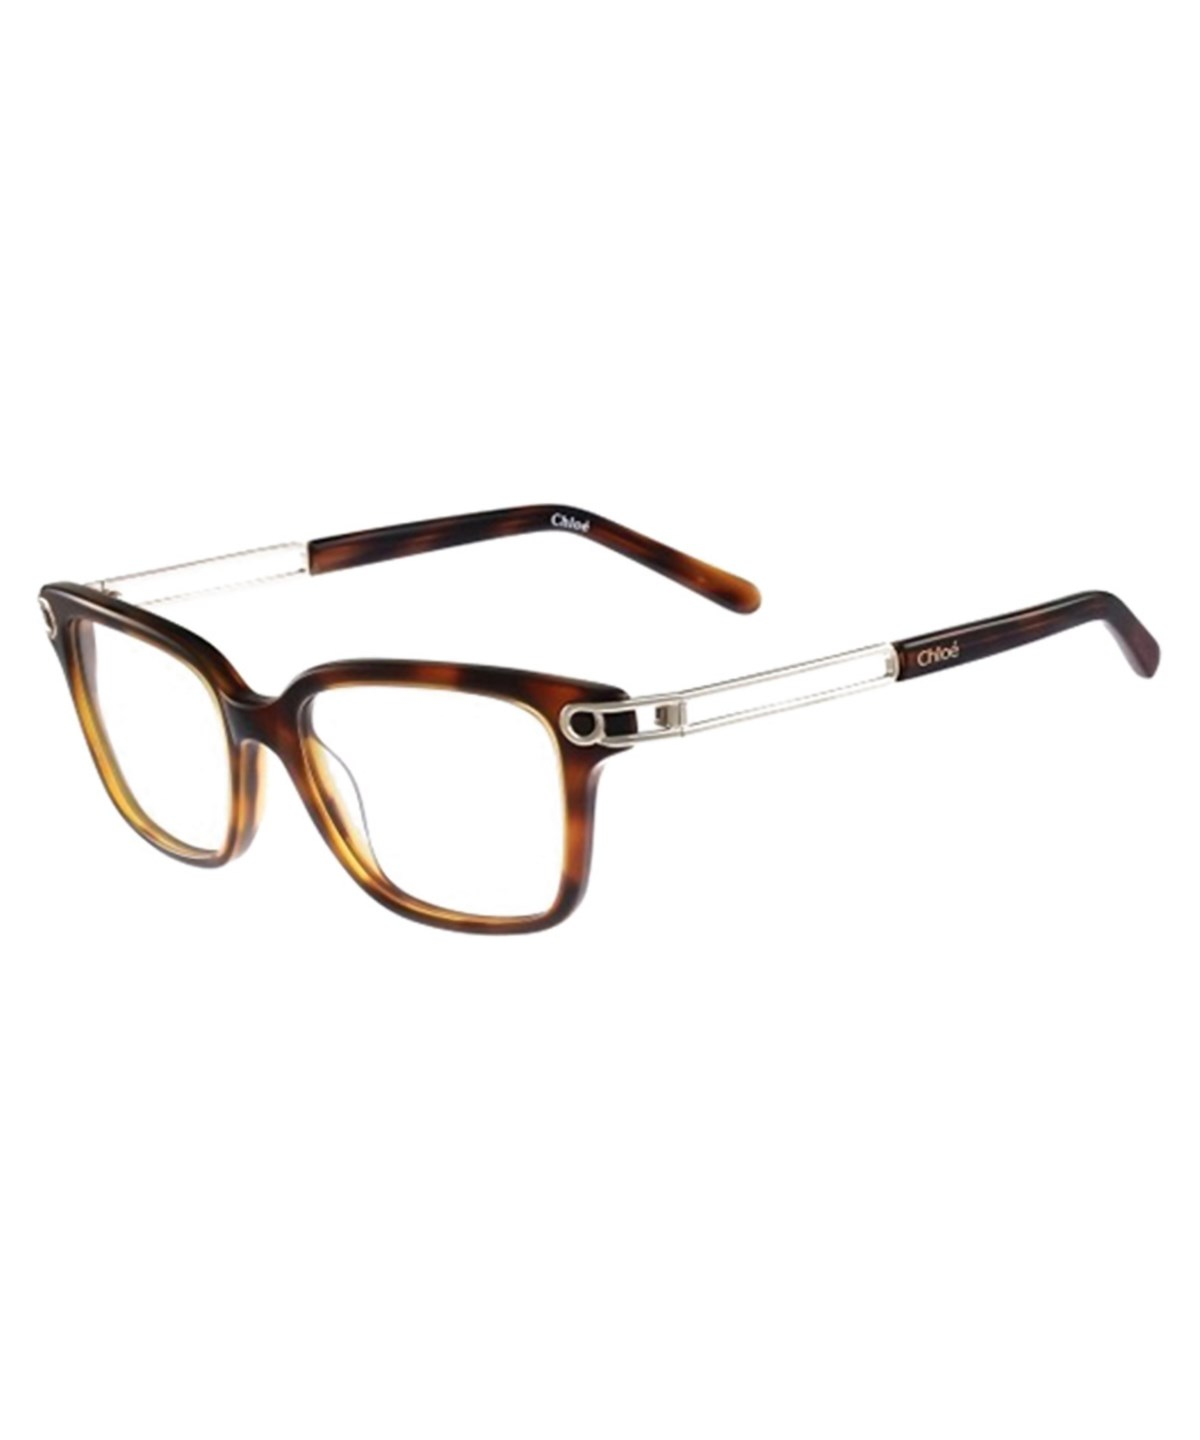 CHLOÉ Chloe Women'S Ce2663 Optical Frames' in Tortoise